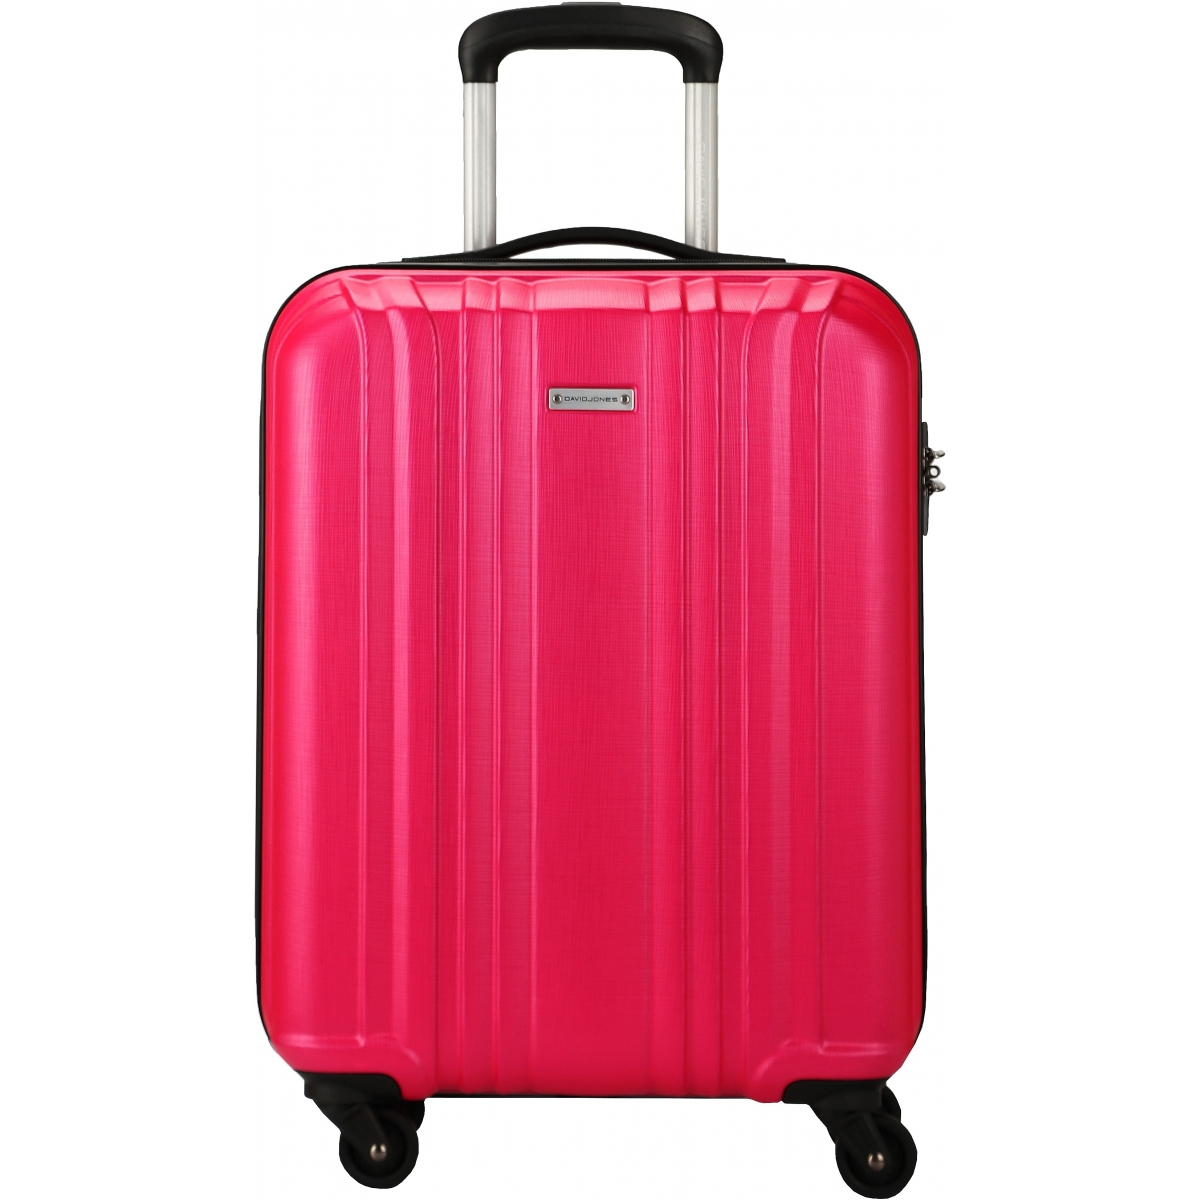 valise cabine rigide david jones 55cm ba10171p couleur principale fushia promotion. Black Bedroom Furniture Sets. Home Design Ideas